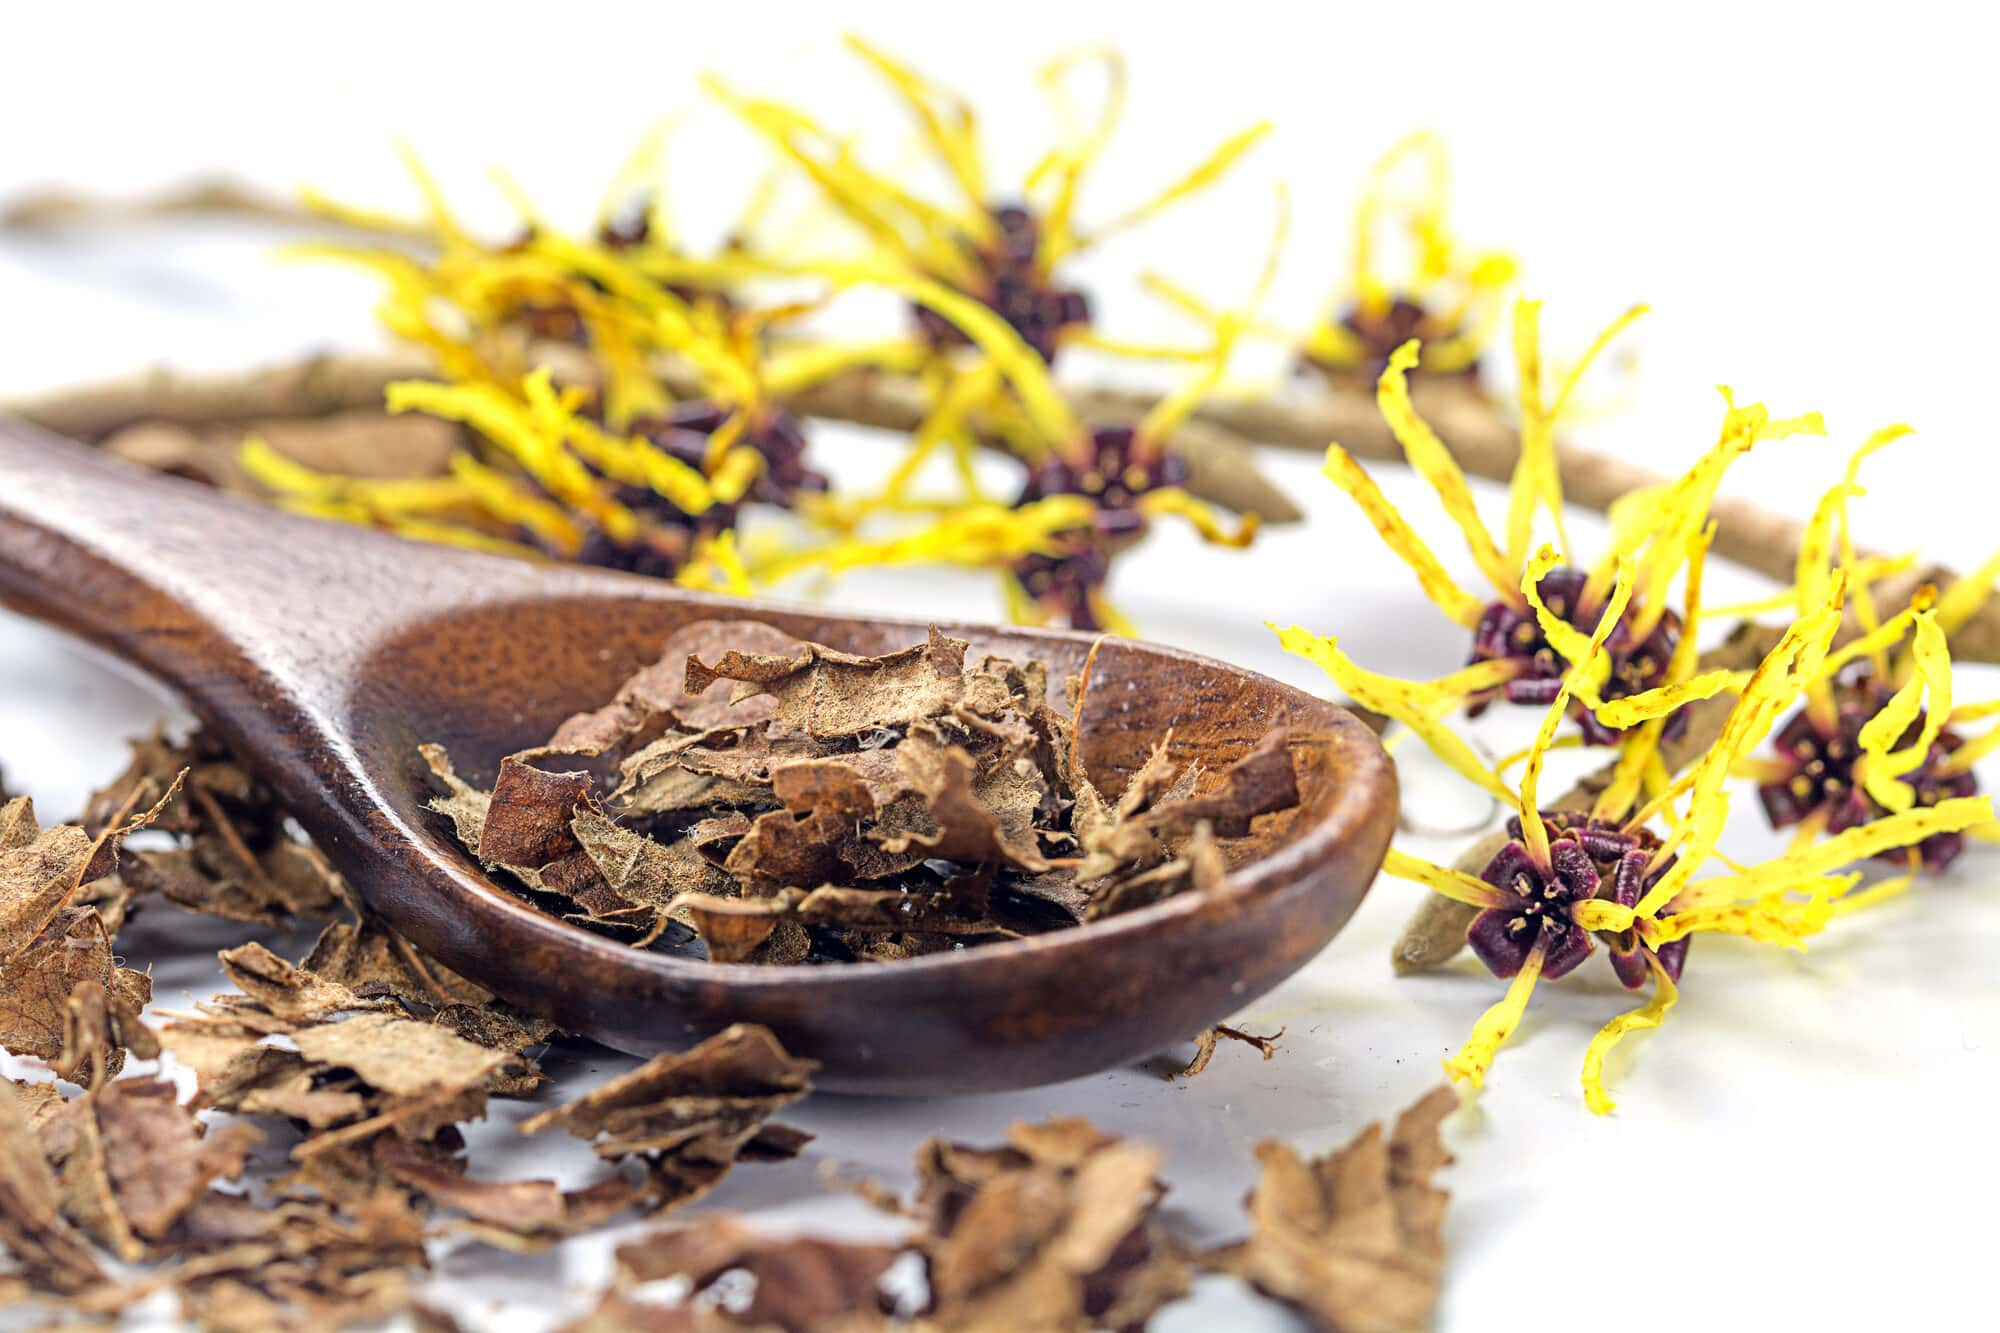 What's A Good Witch Hazel Substitute?